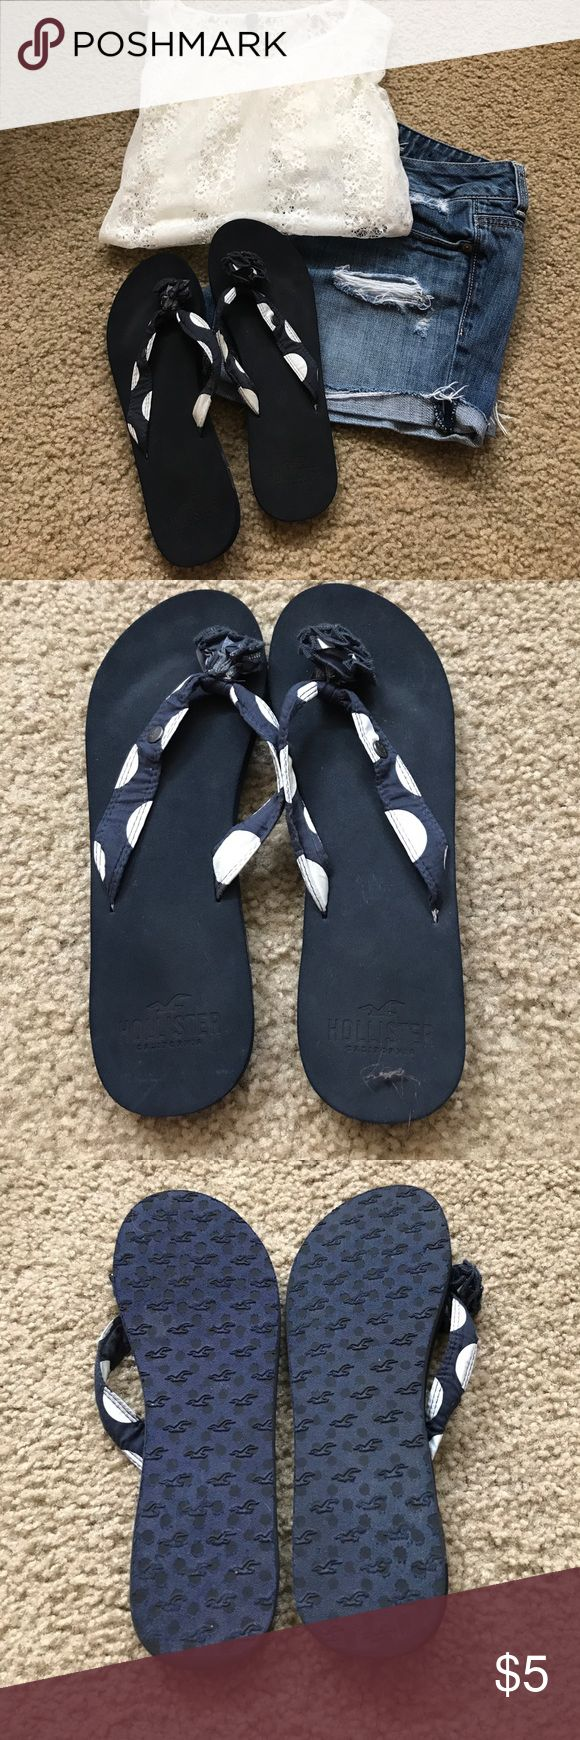 Hollister size 6/7 Polka dot flip flops Used condition. Slight smudges on white Polka dot portion. But otherwise they look new Hollister Shoes Sandals